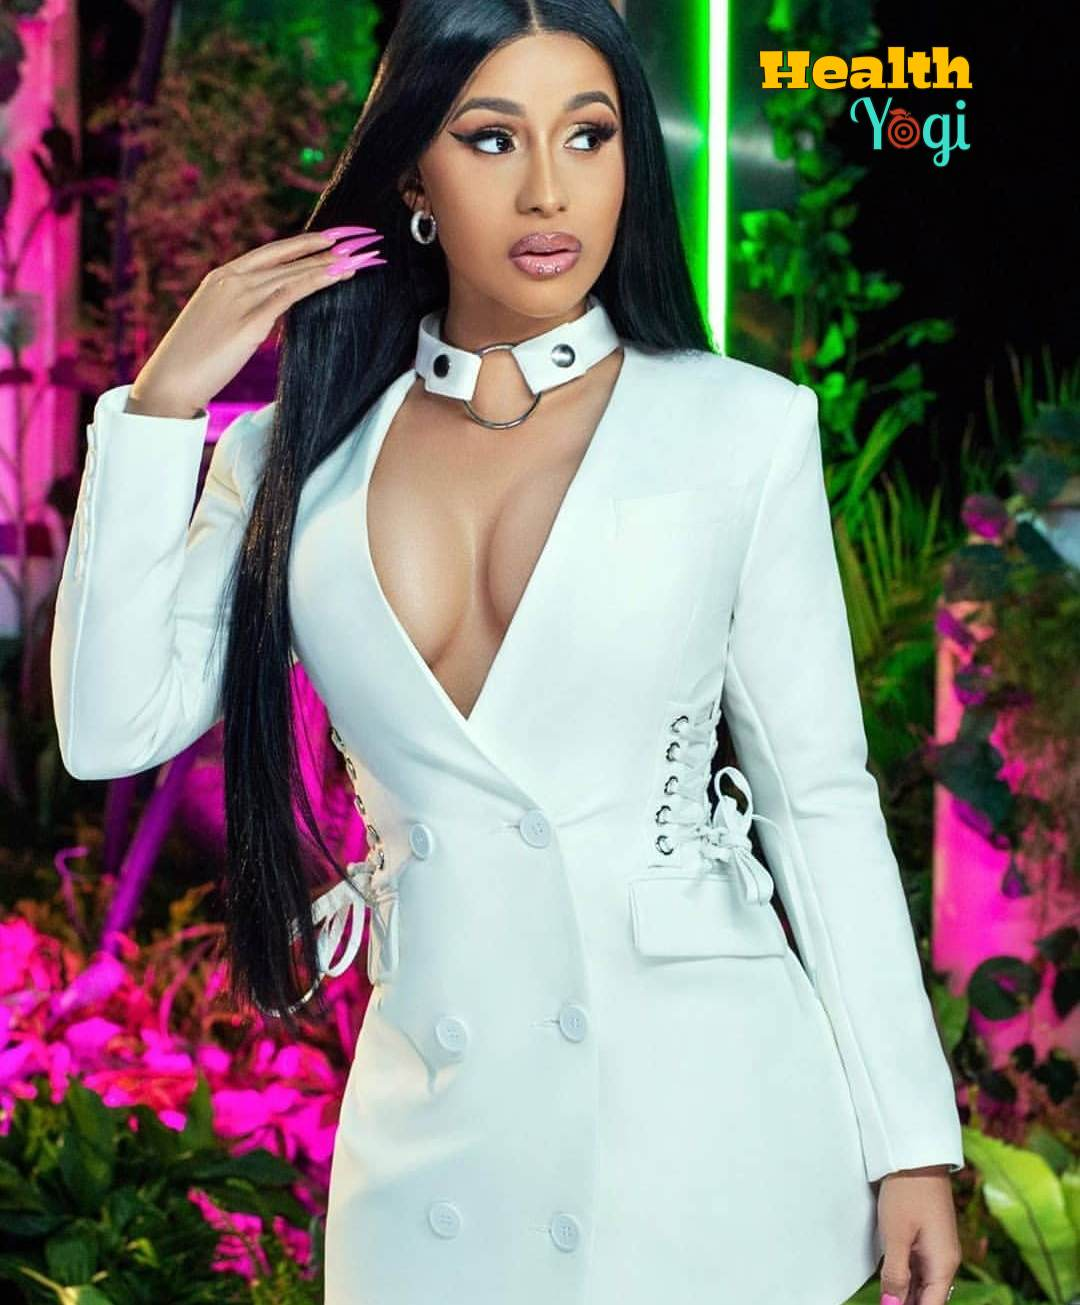 Cardi B Workout Routine and Diet Plan